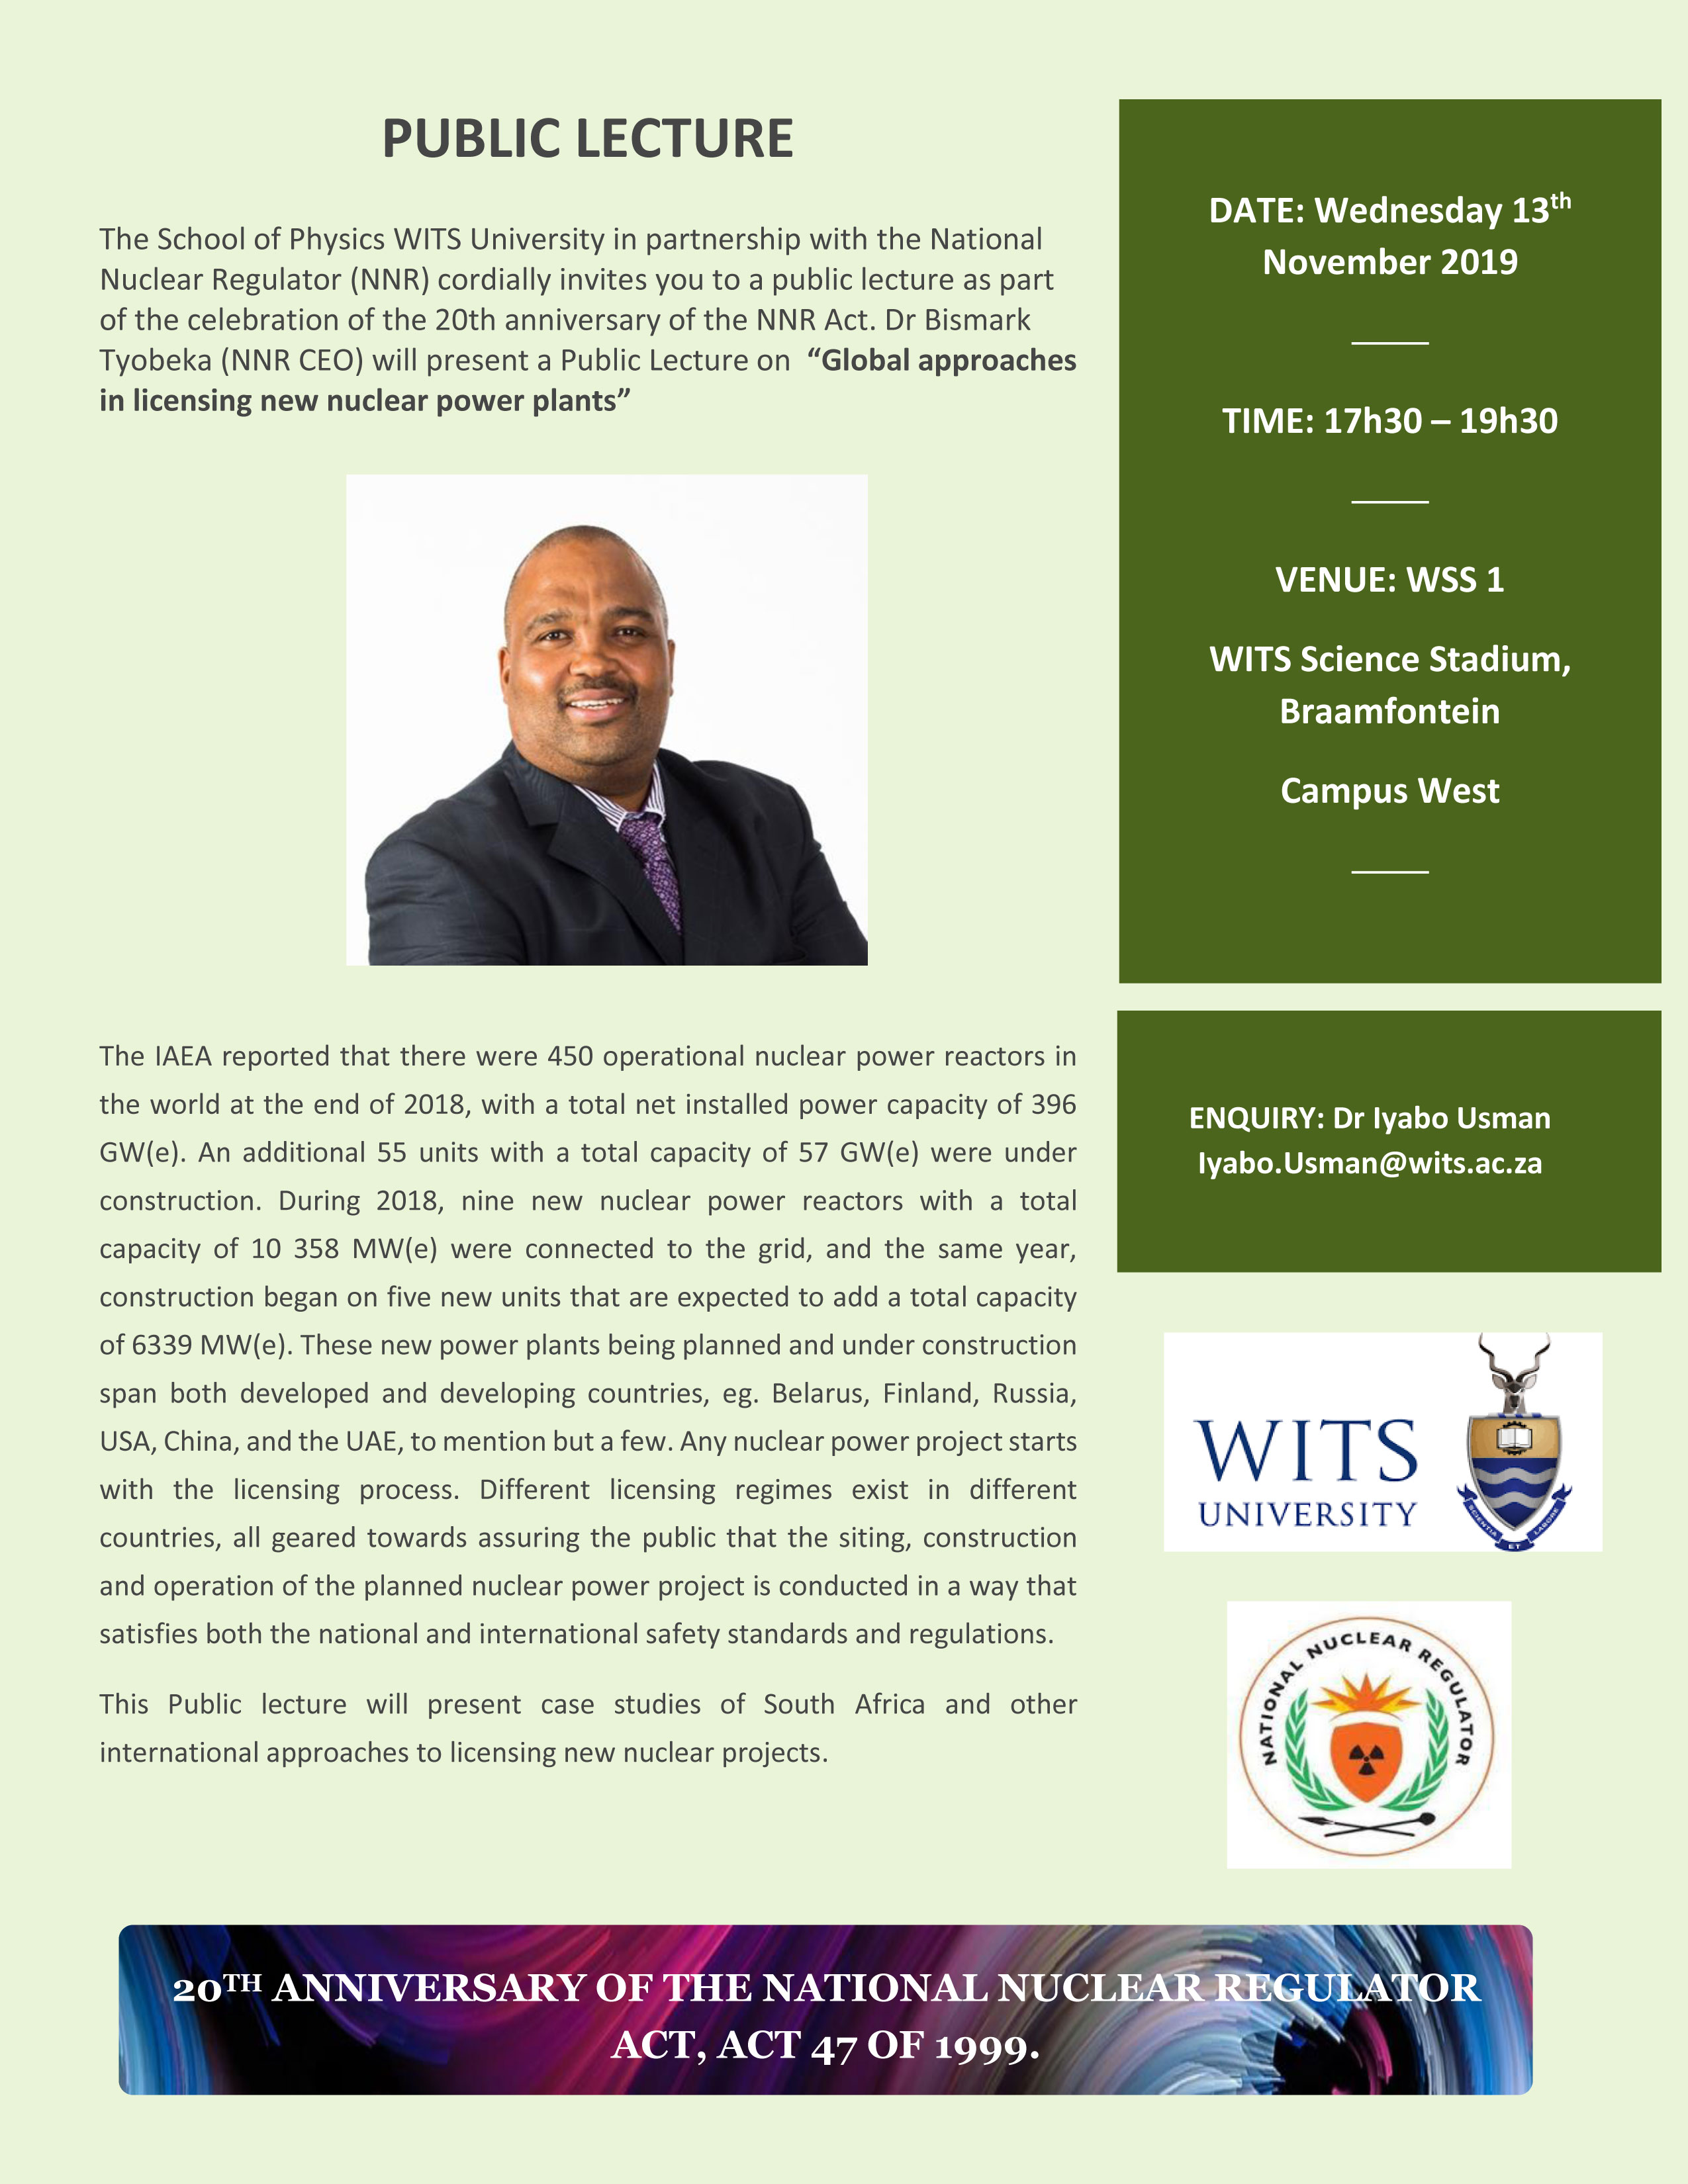 NNR CEO Wits Lecture